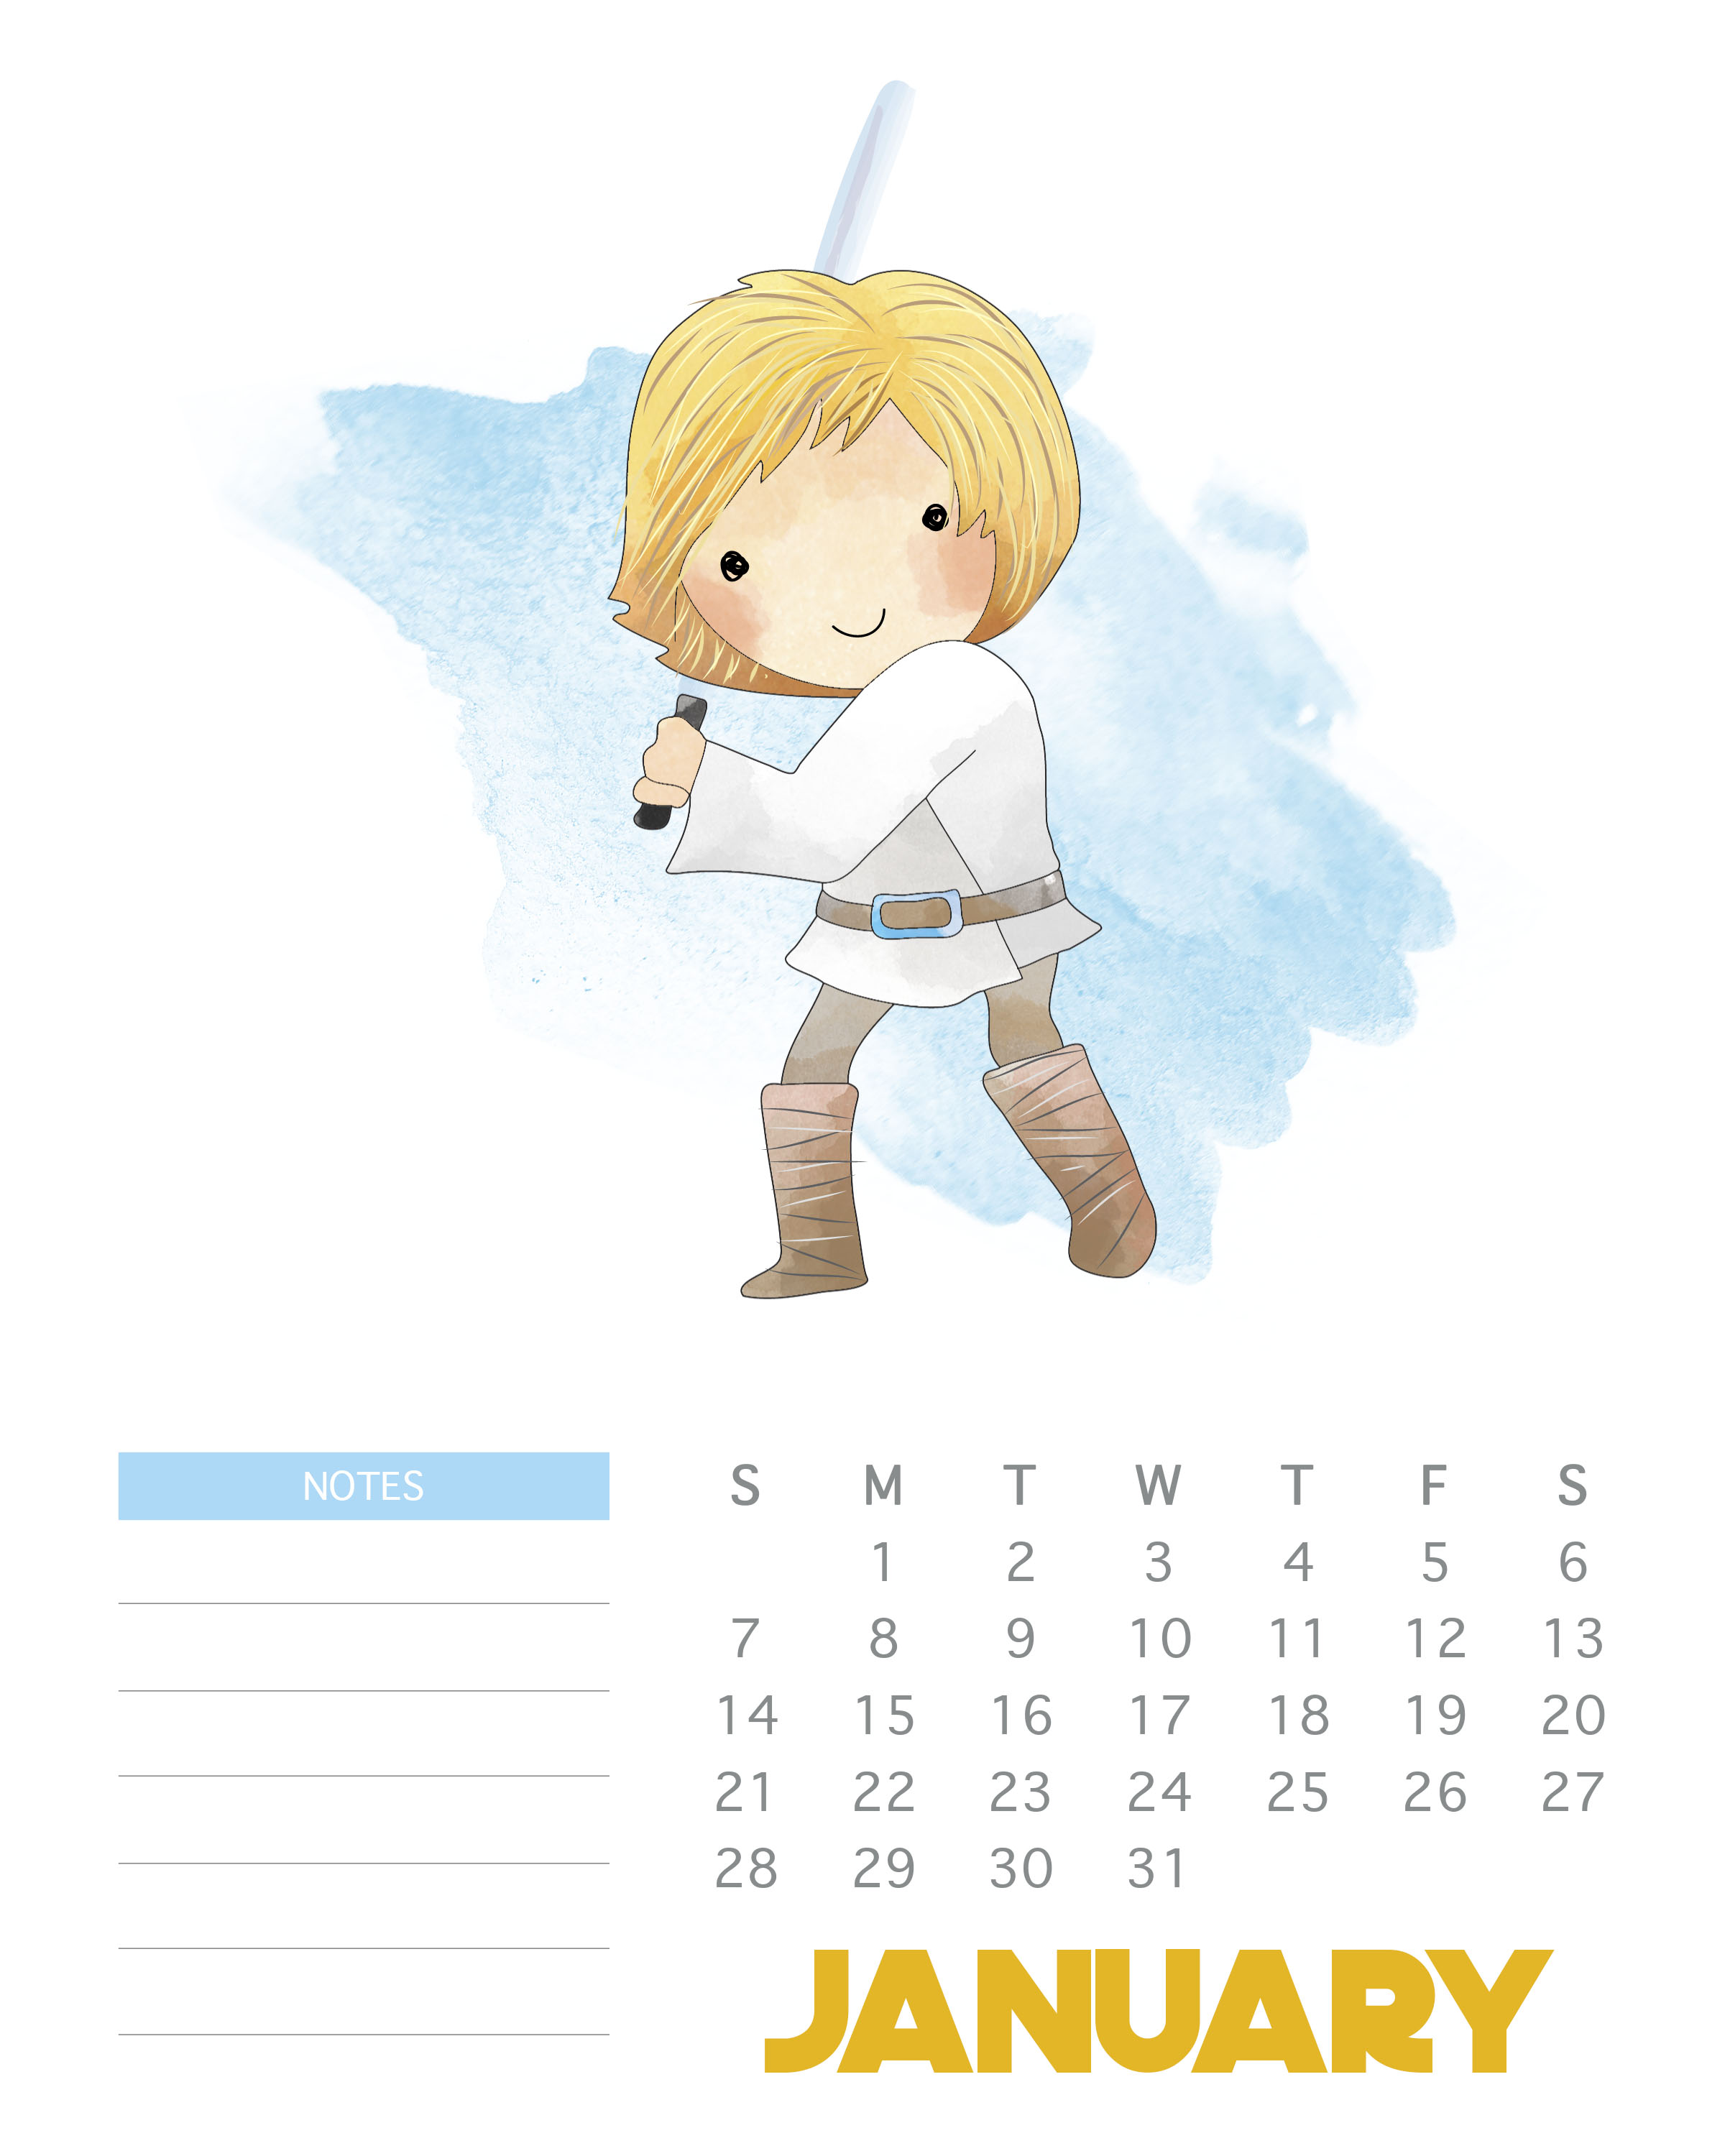 This free printable Star Wars calendar has cute character cartoons for each month